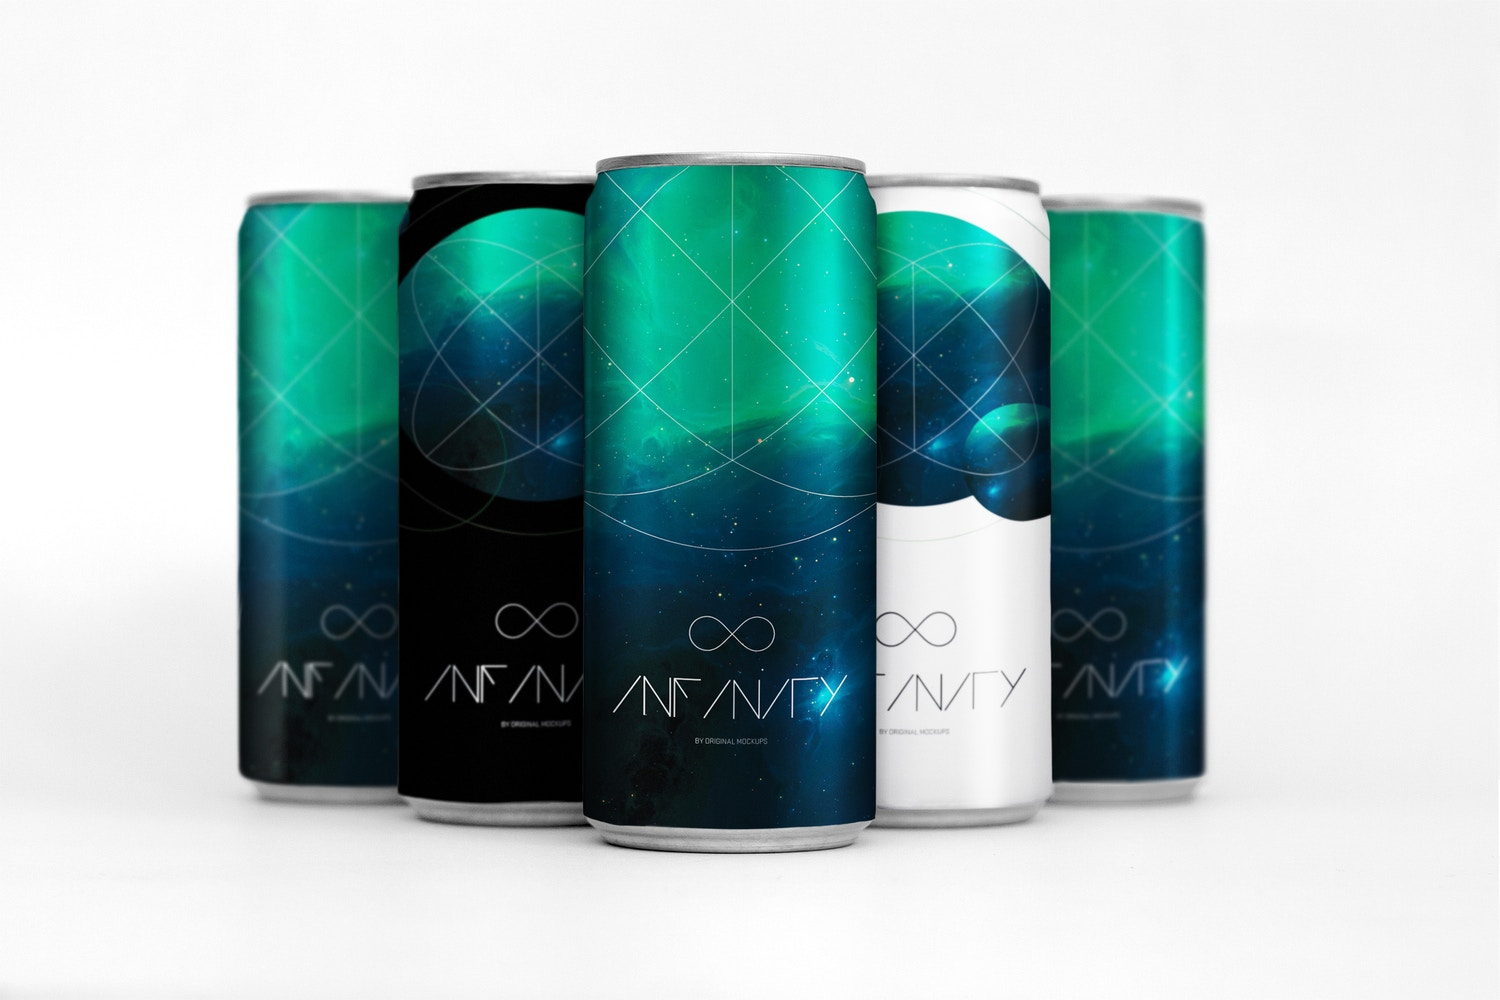 Sleek Cans Mockup 1 by Original Mockups on Original Mockups